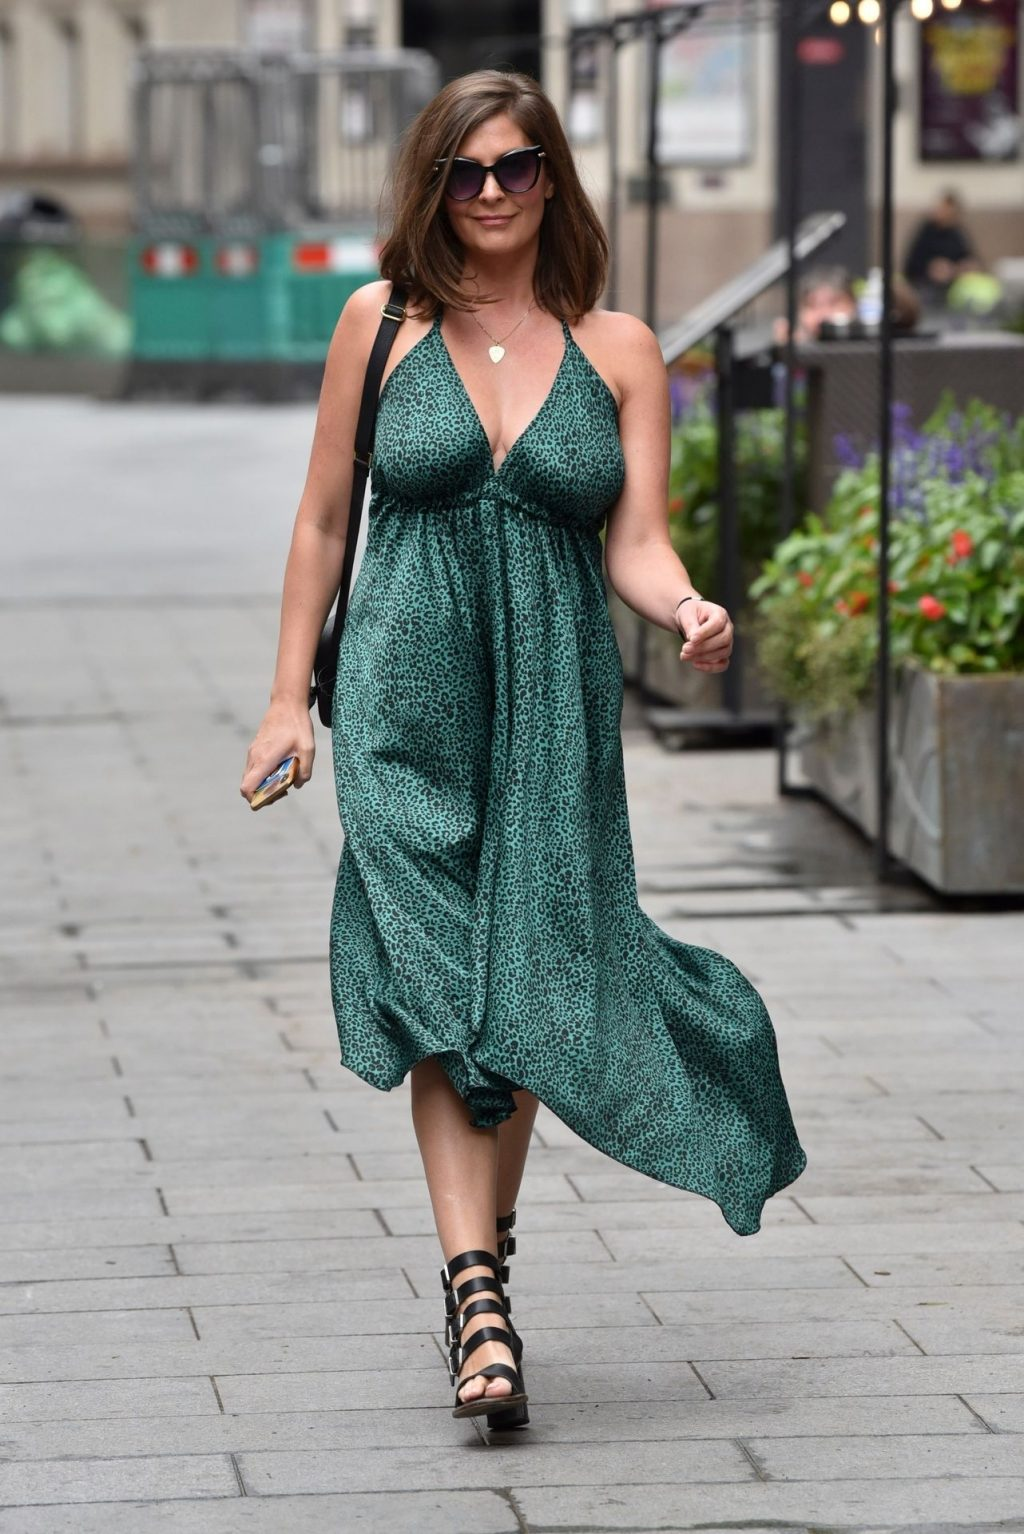 Sexy Lucy Horobin Is Pictured Arriving at the Global Studios (49 Photos)